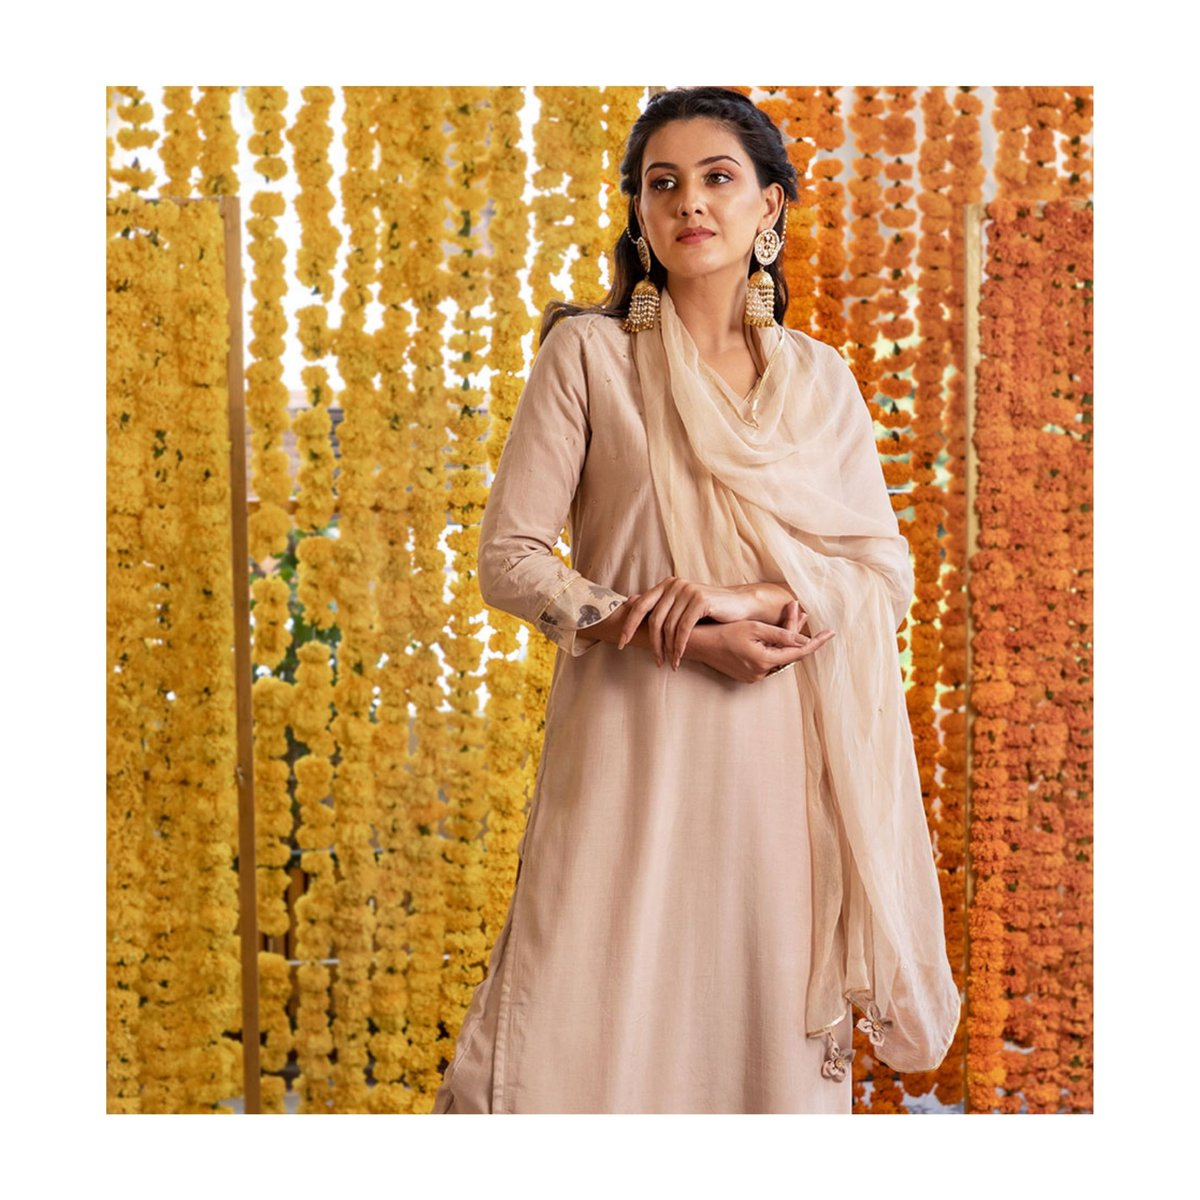 The collection portrays simplicity and versatility while keeping the core of the conversation to weaving.    #jovifashion #afgani #beige #festivevibes #fashiontrends #festiveoutfit #festivecollection #style #ethnic #outfitoftheday #inspirations #embroidery